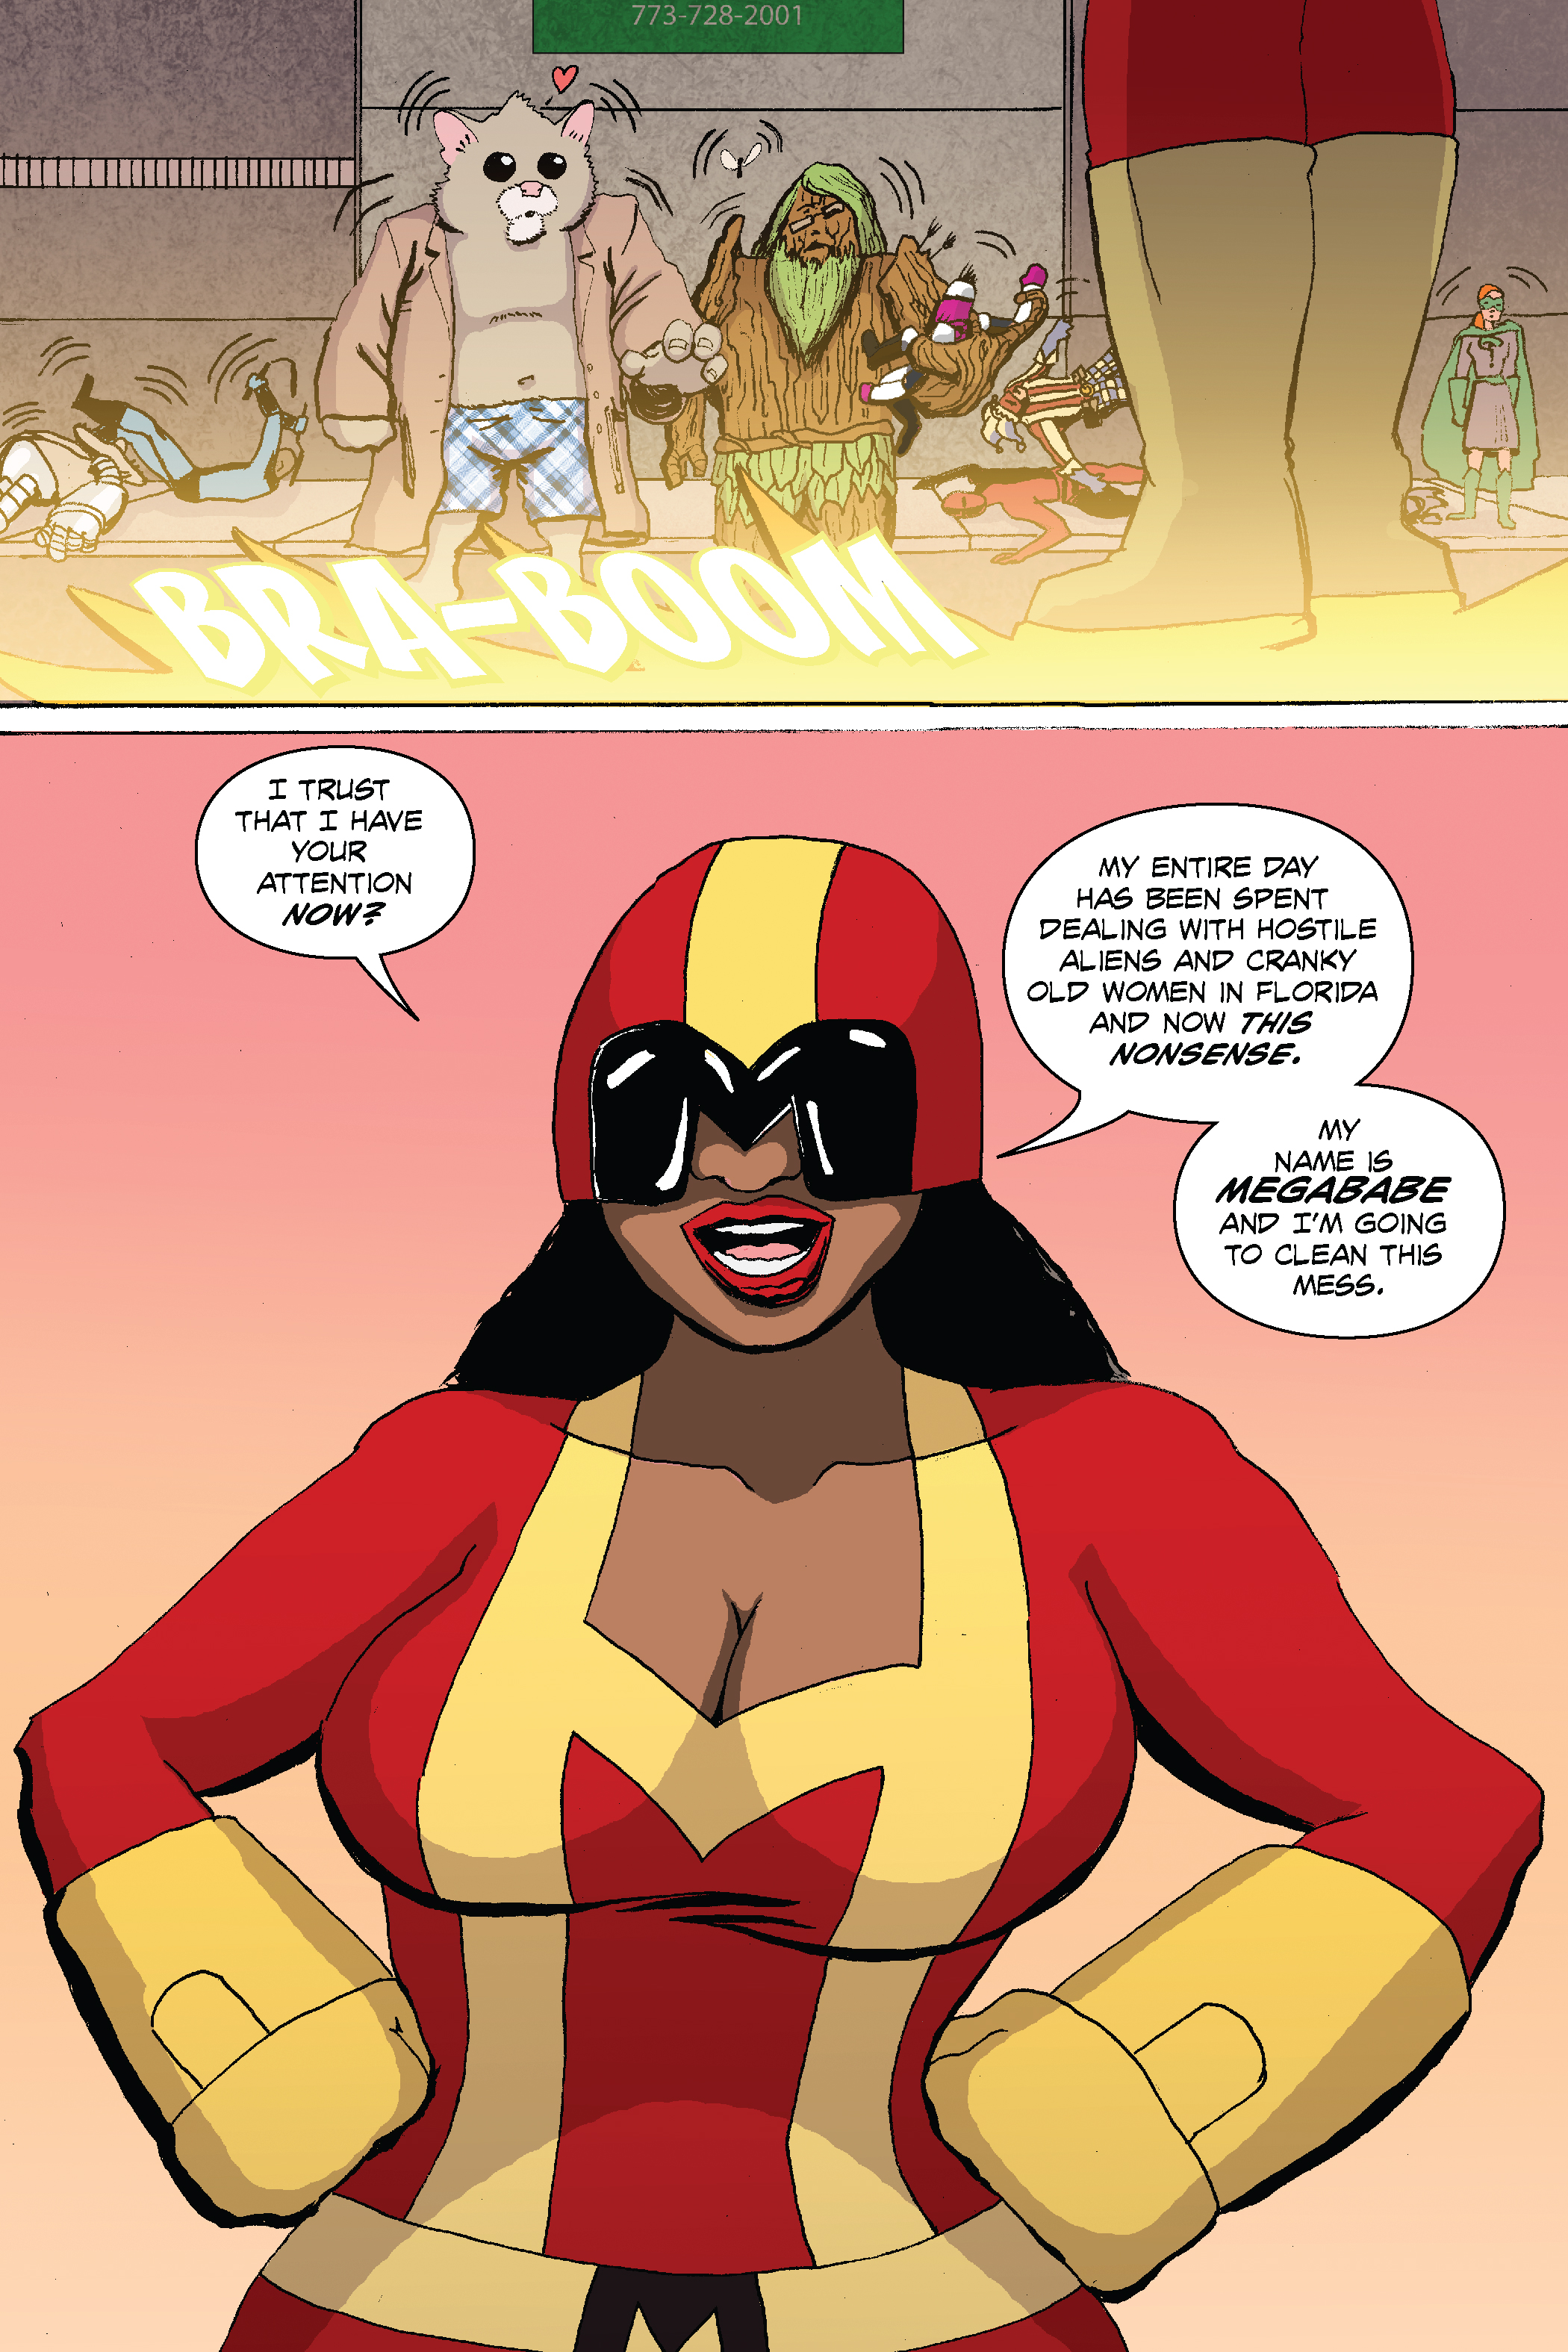 PAGE 24 Panel 1. Two large yellow boots appear as a large thud happens that floors everyone in the battle except Roosevelt, Mystery Girl and Living Log. A small bright heart shoots out of Roosevelt.  Panel 2. MegaBabe appears. Her helmet is red with a gold stripe, Her gauntlets are gold as is her belt and the M on her chest the rest of her suit is red. Her lipstick is red and her skin is the same tone as Rosario Dawson. Kind of light mocha colored. (Should be slightly darker than Shayna, her daughter)  MEGABABE: Did that get your attention? GOOD. You may have heard of me, my name is MegaBabe and I'm here to clean up this mess.